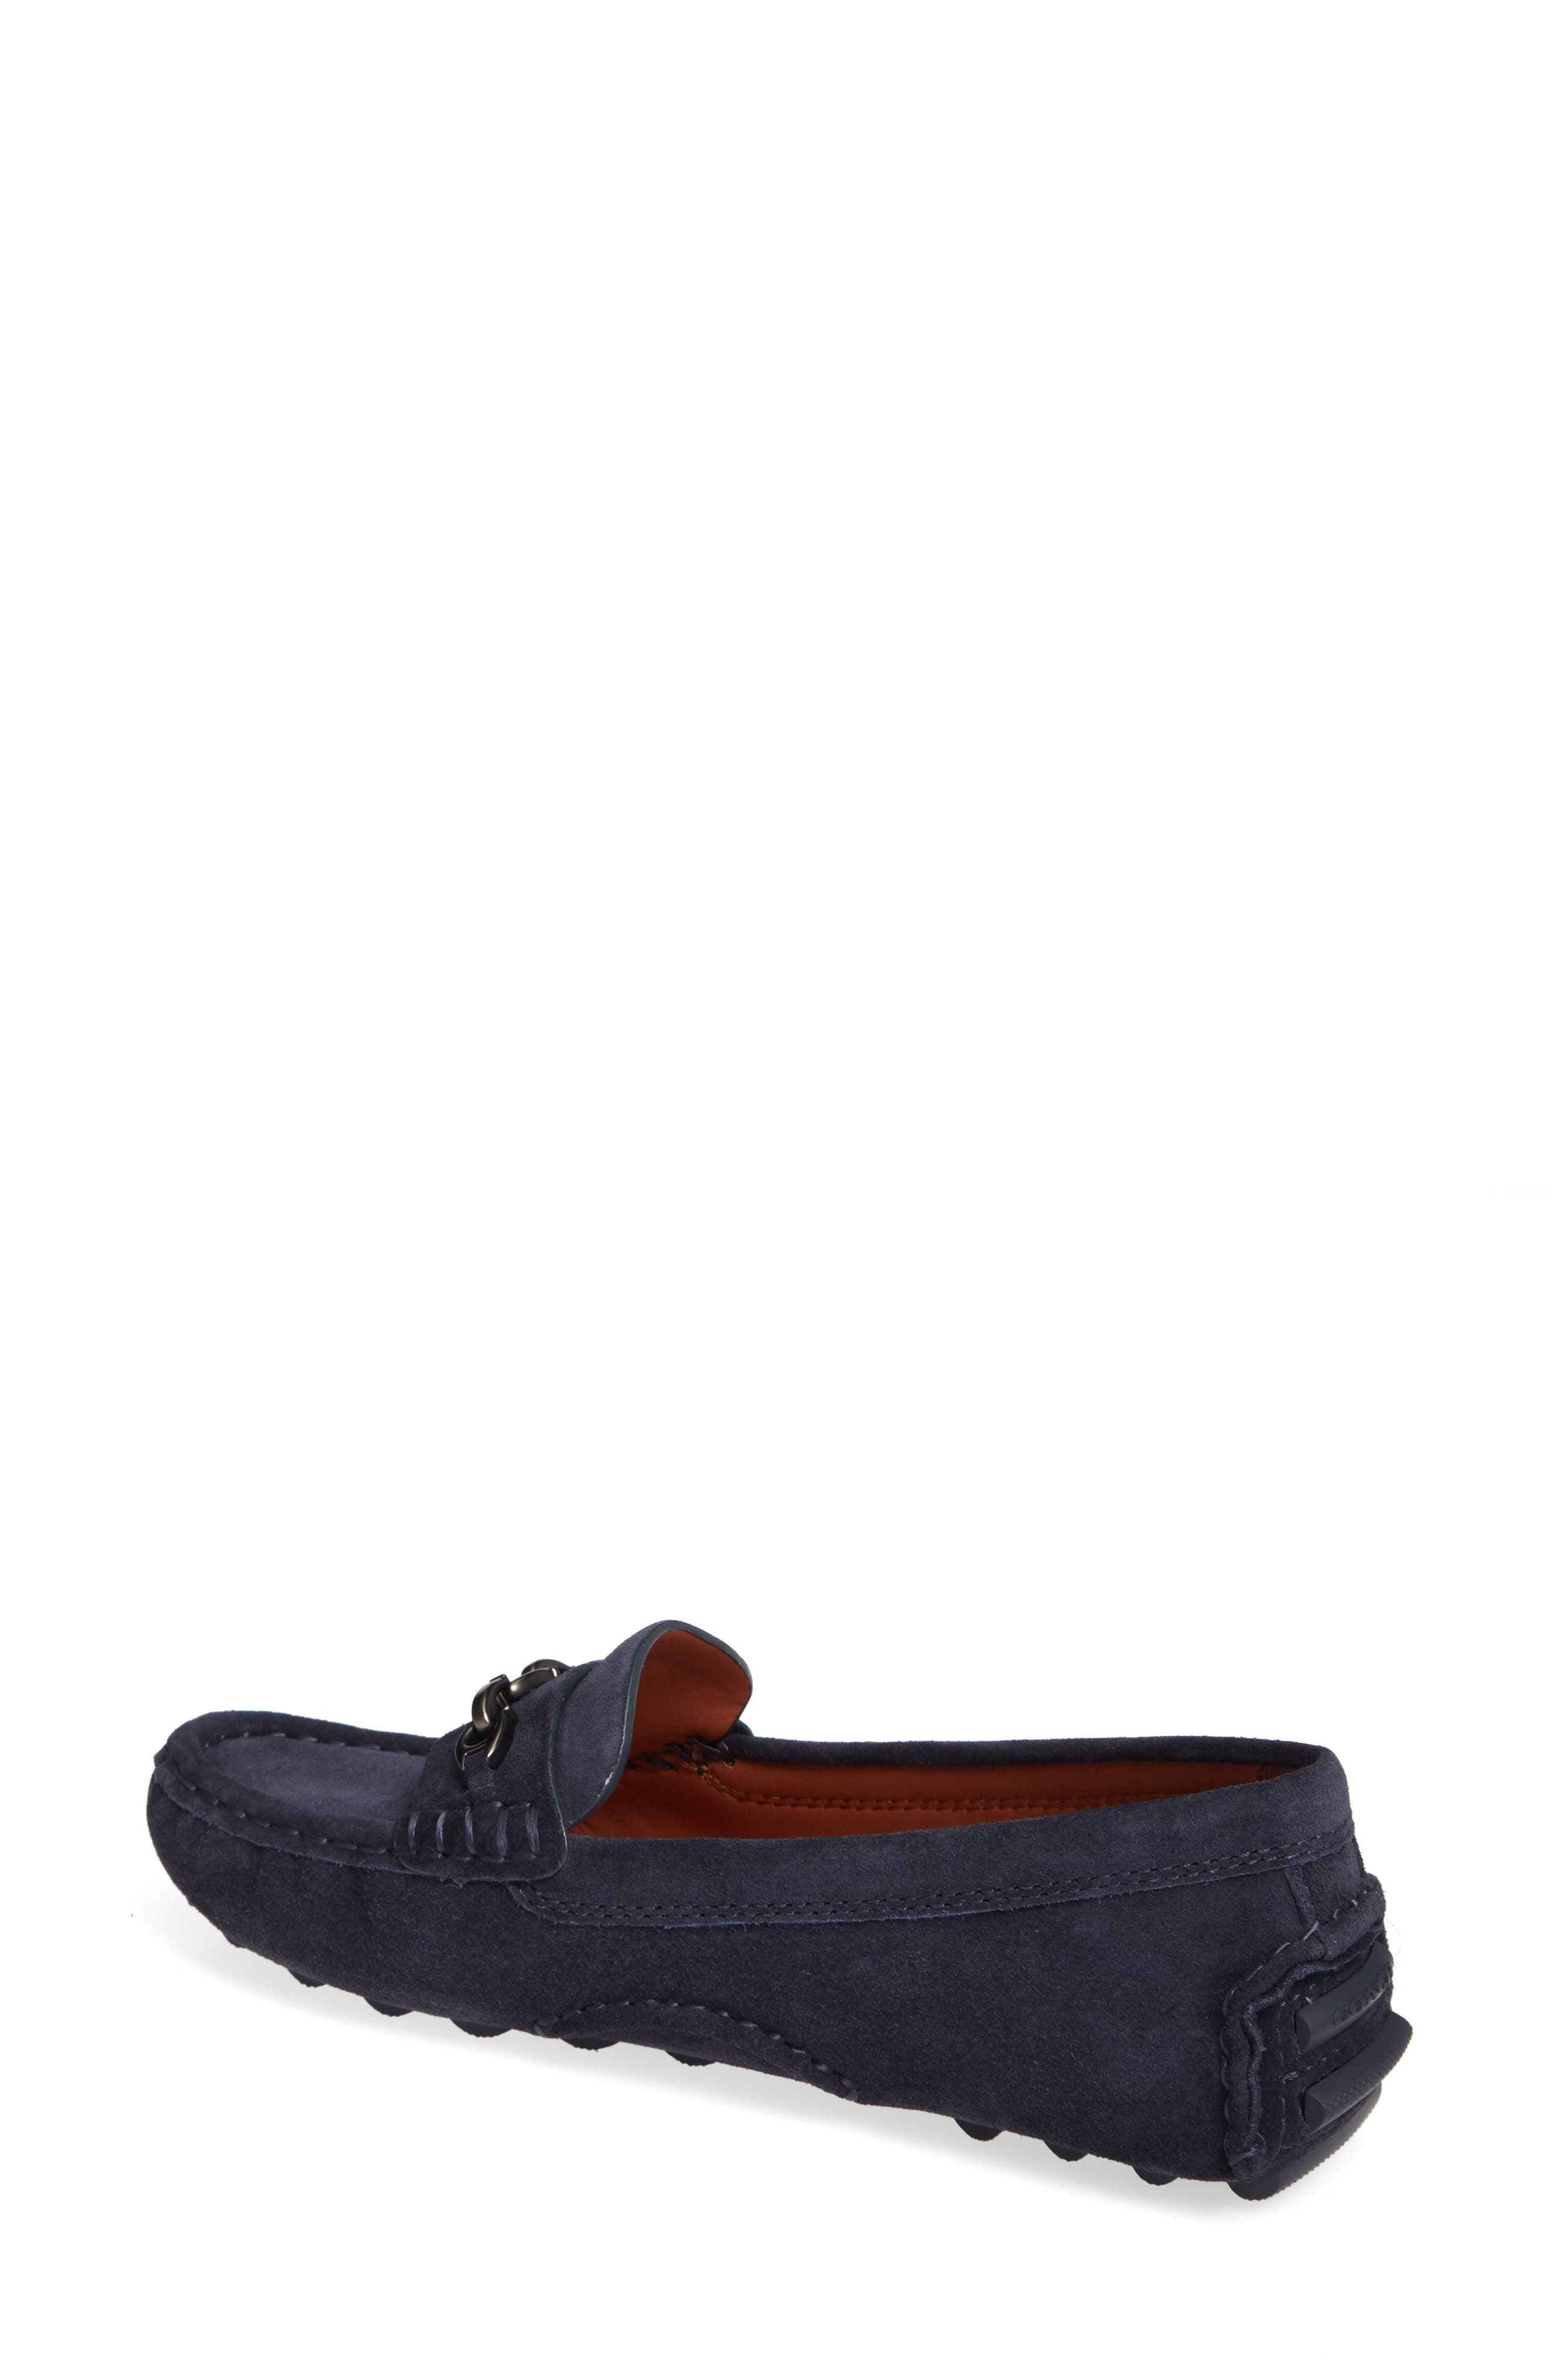 Crosby Driver Loafer,                             Alternate thumbnail 2, color,                             MIDNIGHT NAVY SUEDE